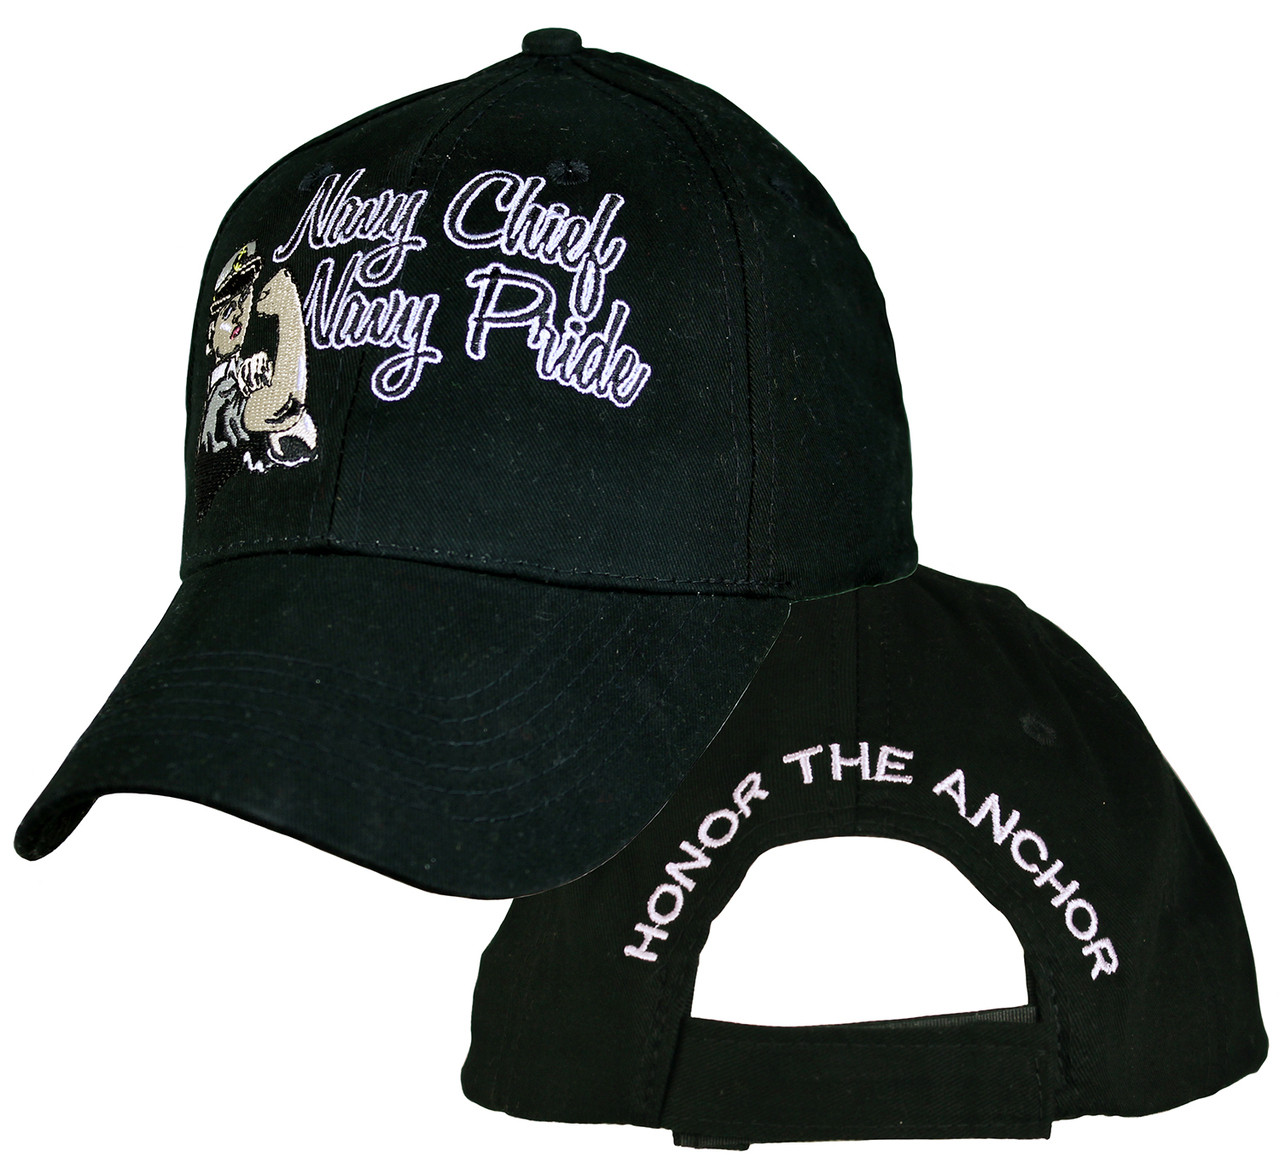 7e117bb71d7 Ladies US NAVY NAVY Chief Black OFFICIALLY LICENSED Military Hat baseball  cap